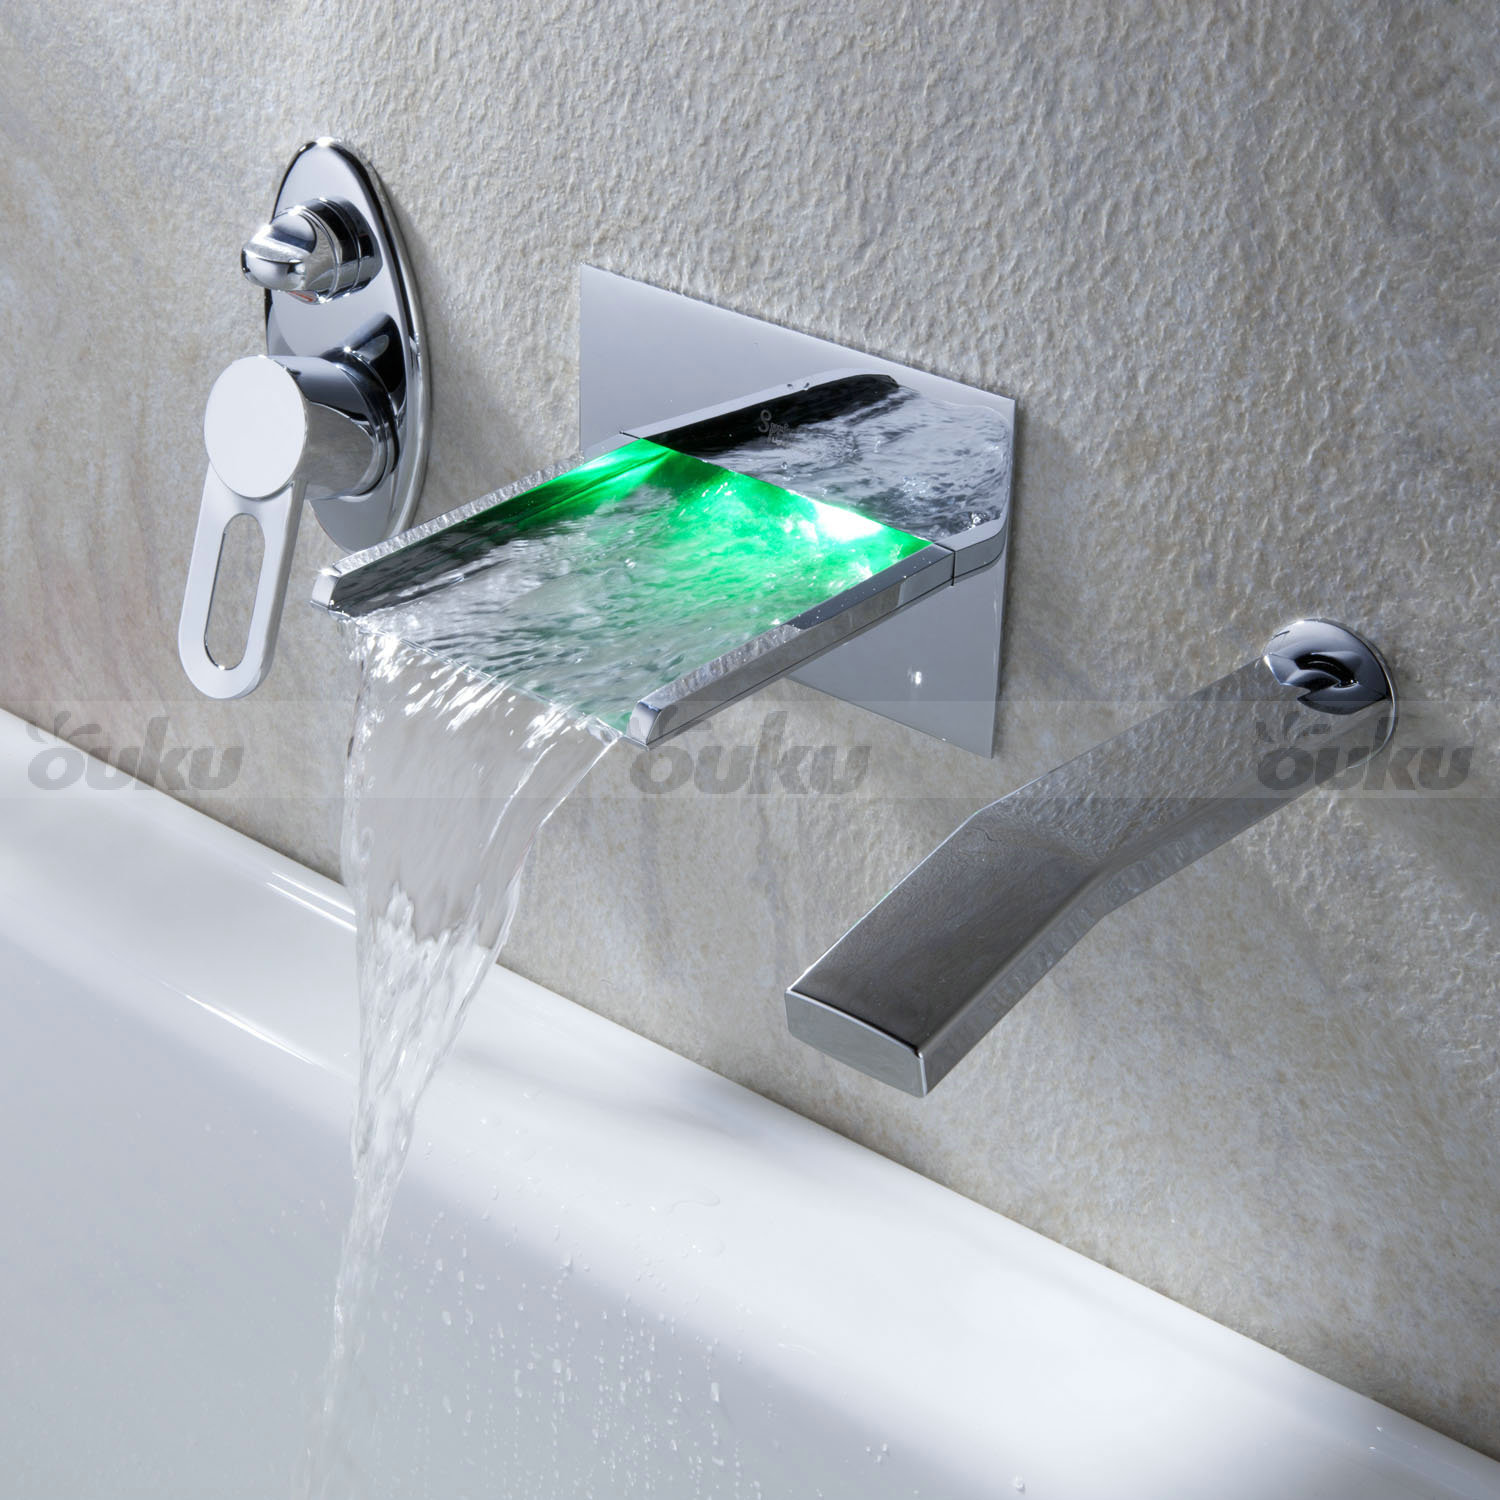 In Wall Mount Led Waterfall Tub Faucet Bathtub Mixer Tap Widespread Rgb Pullout Ebay